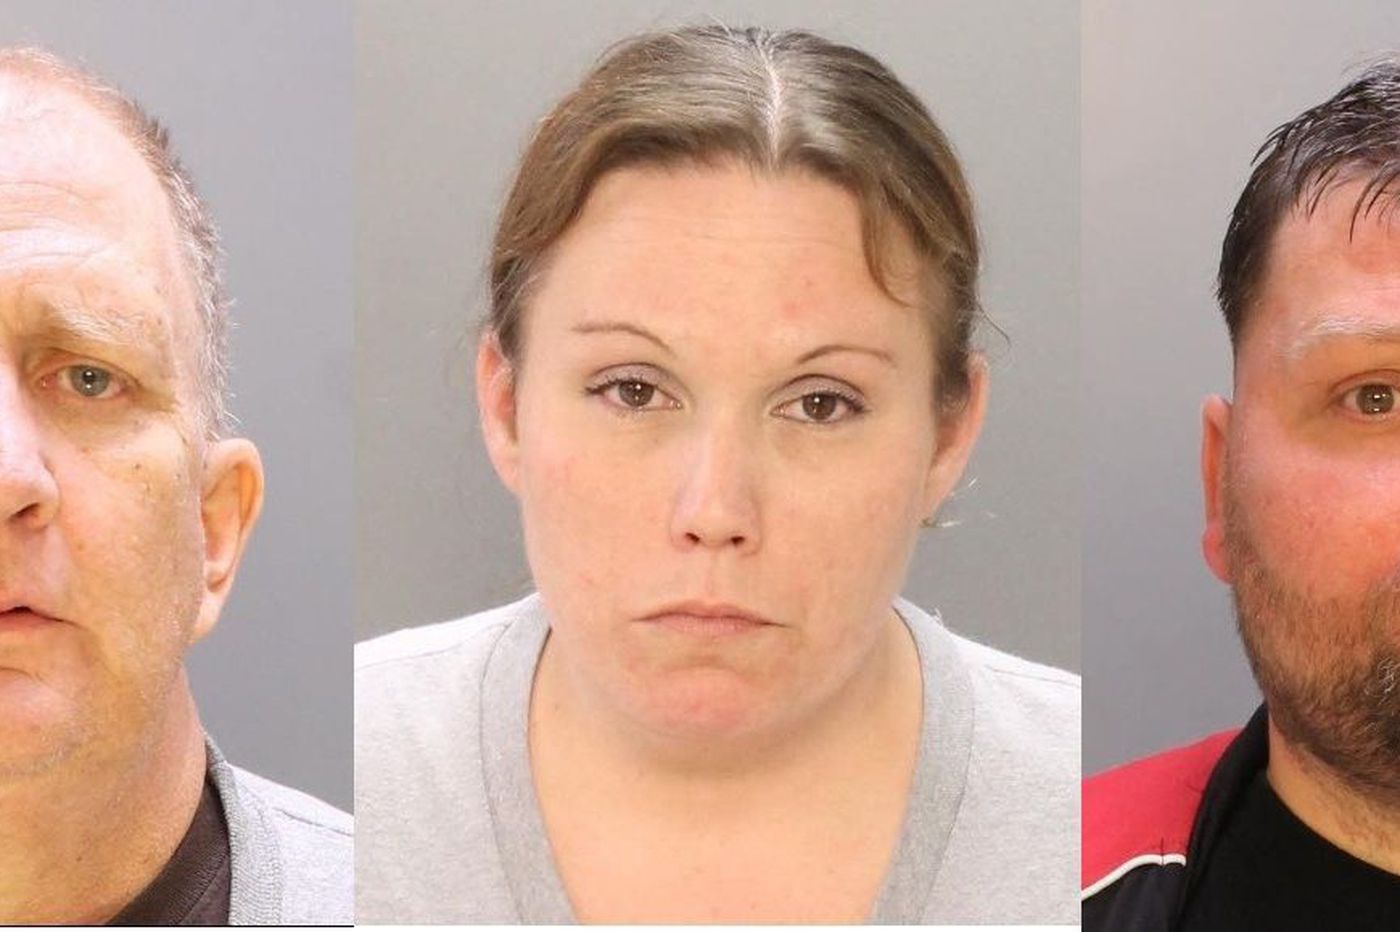 Holmesburg business trio charged with insurance fraud